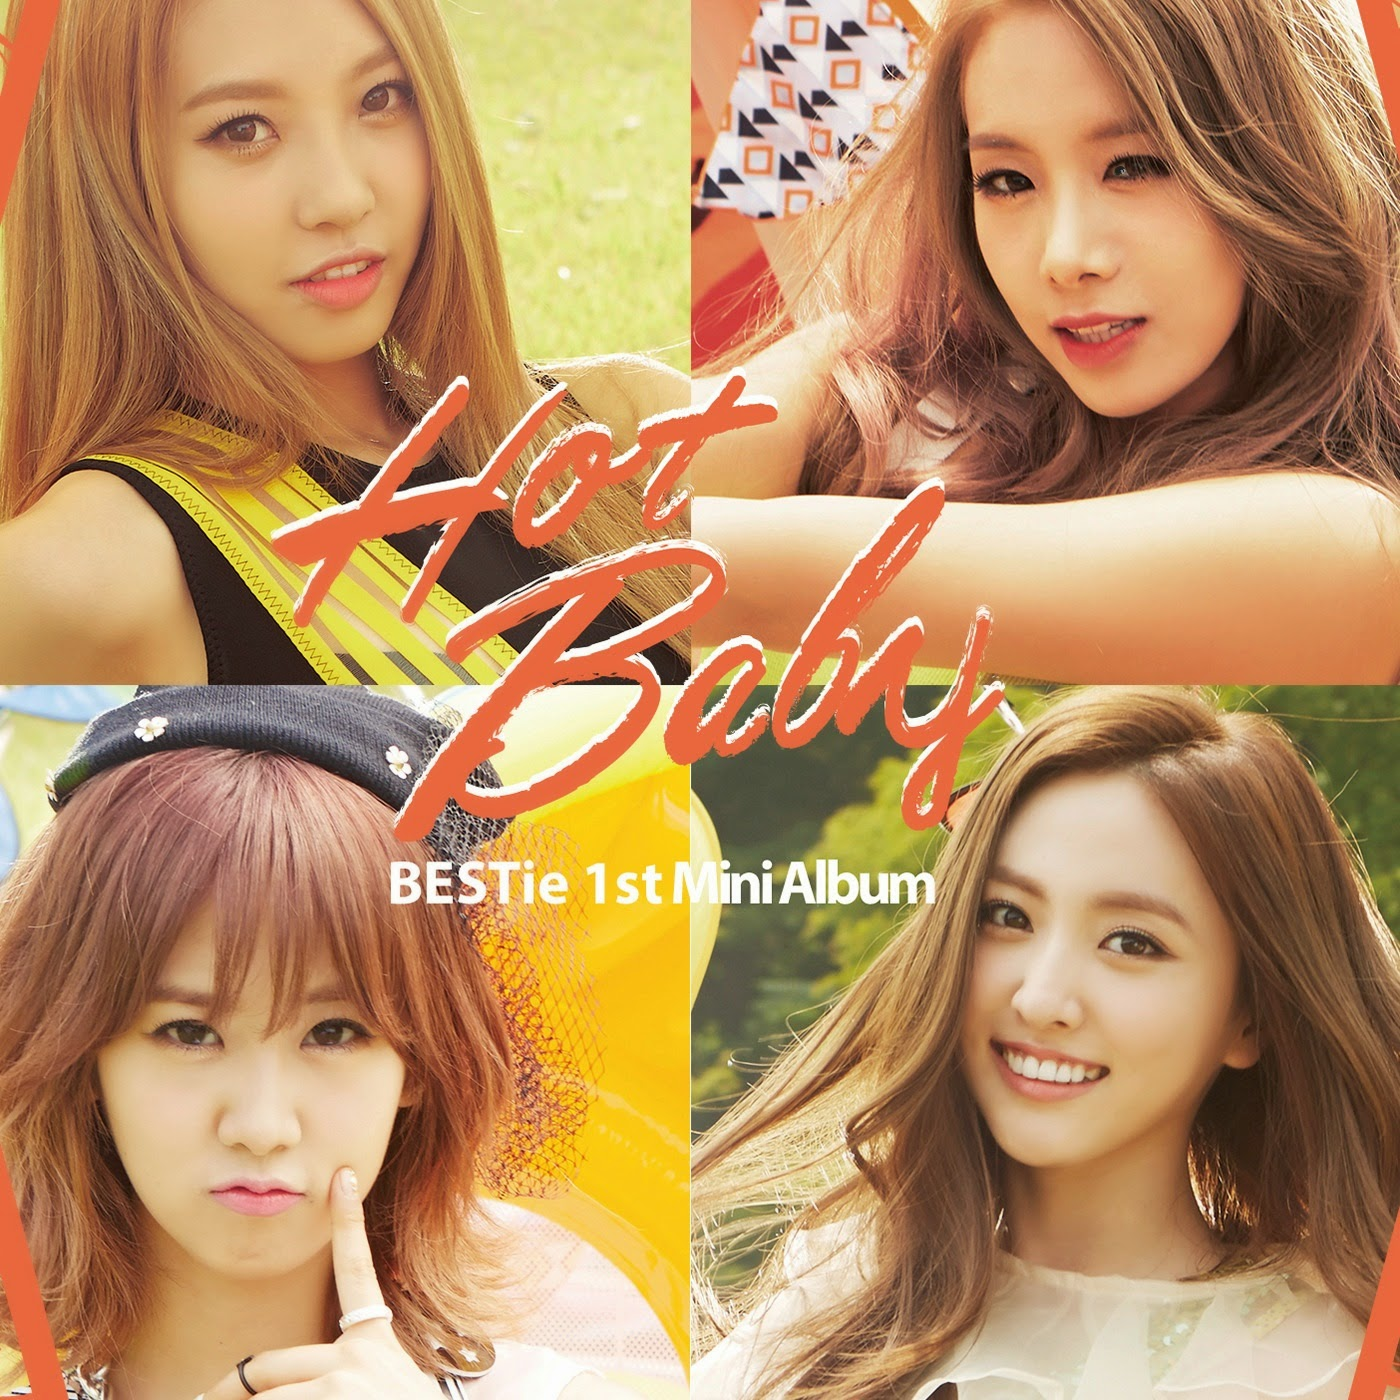 BESTie Hot Baby lyrics cover